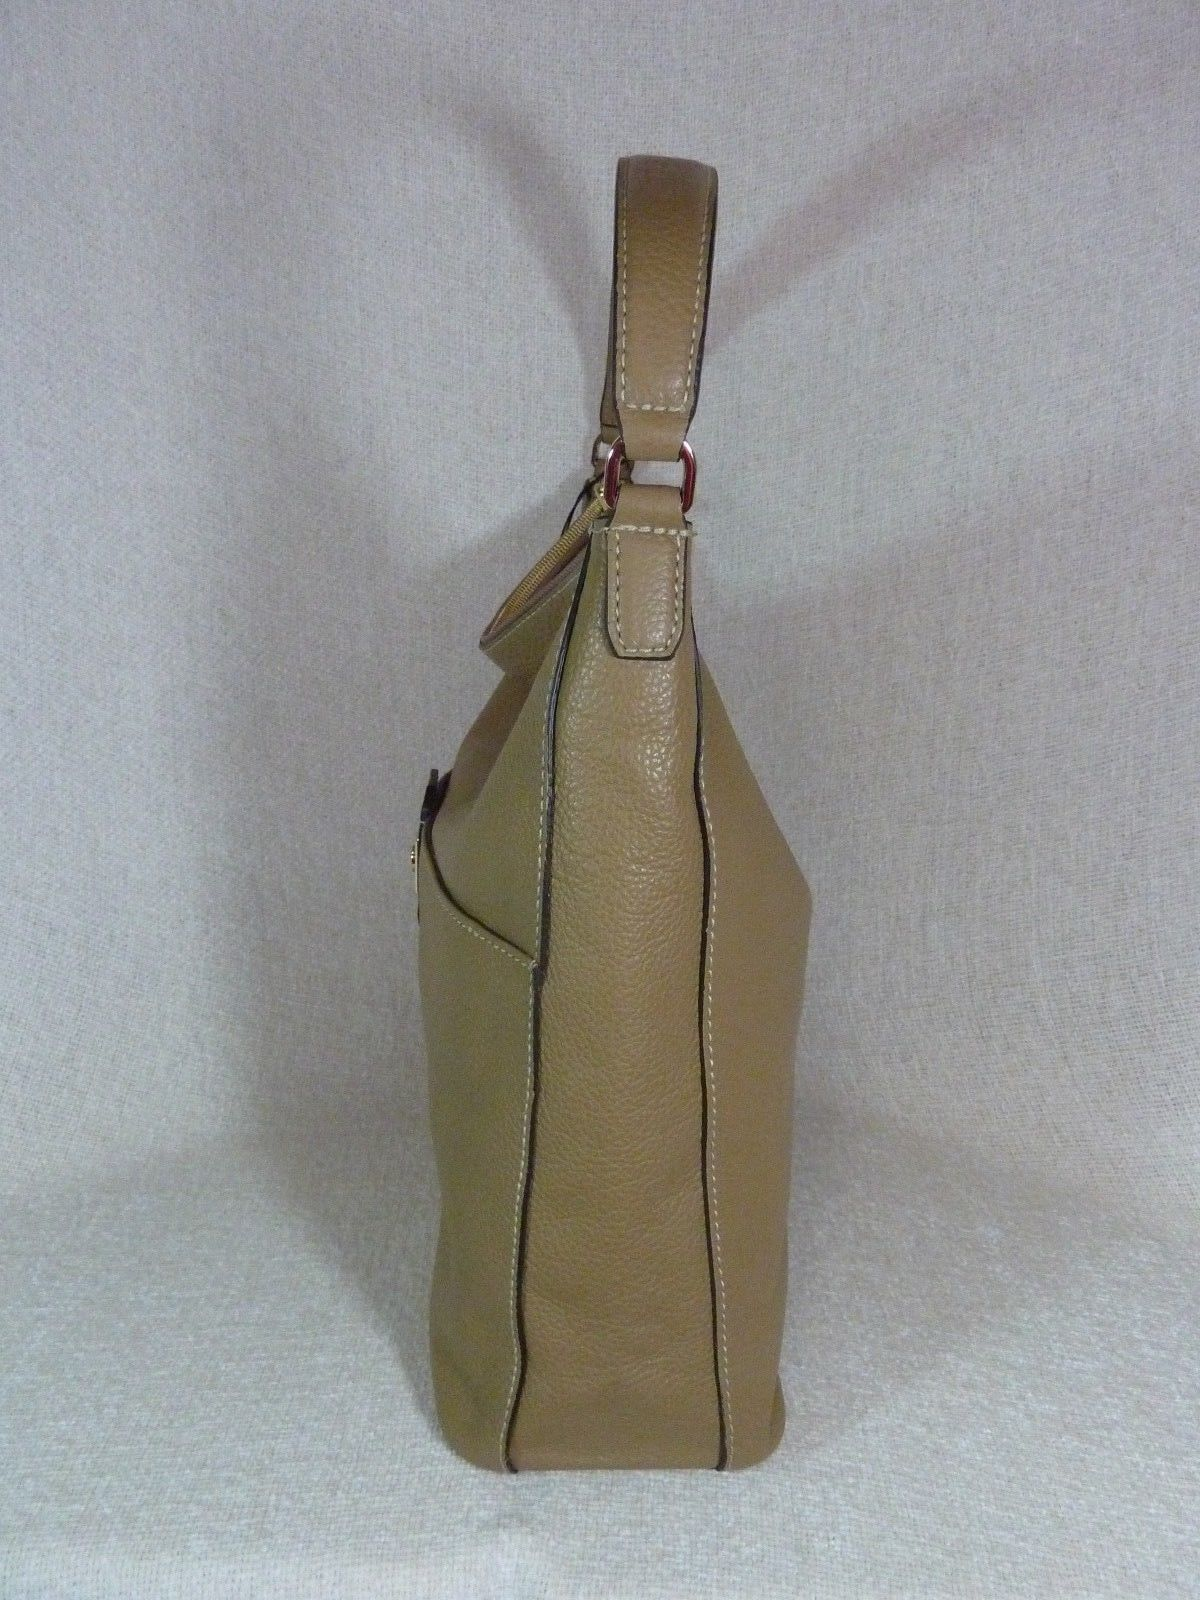 NWT Furla Cappuccino Pebbled Leather Jo Vertical Tote Bag image 7